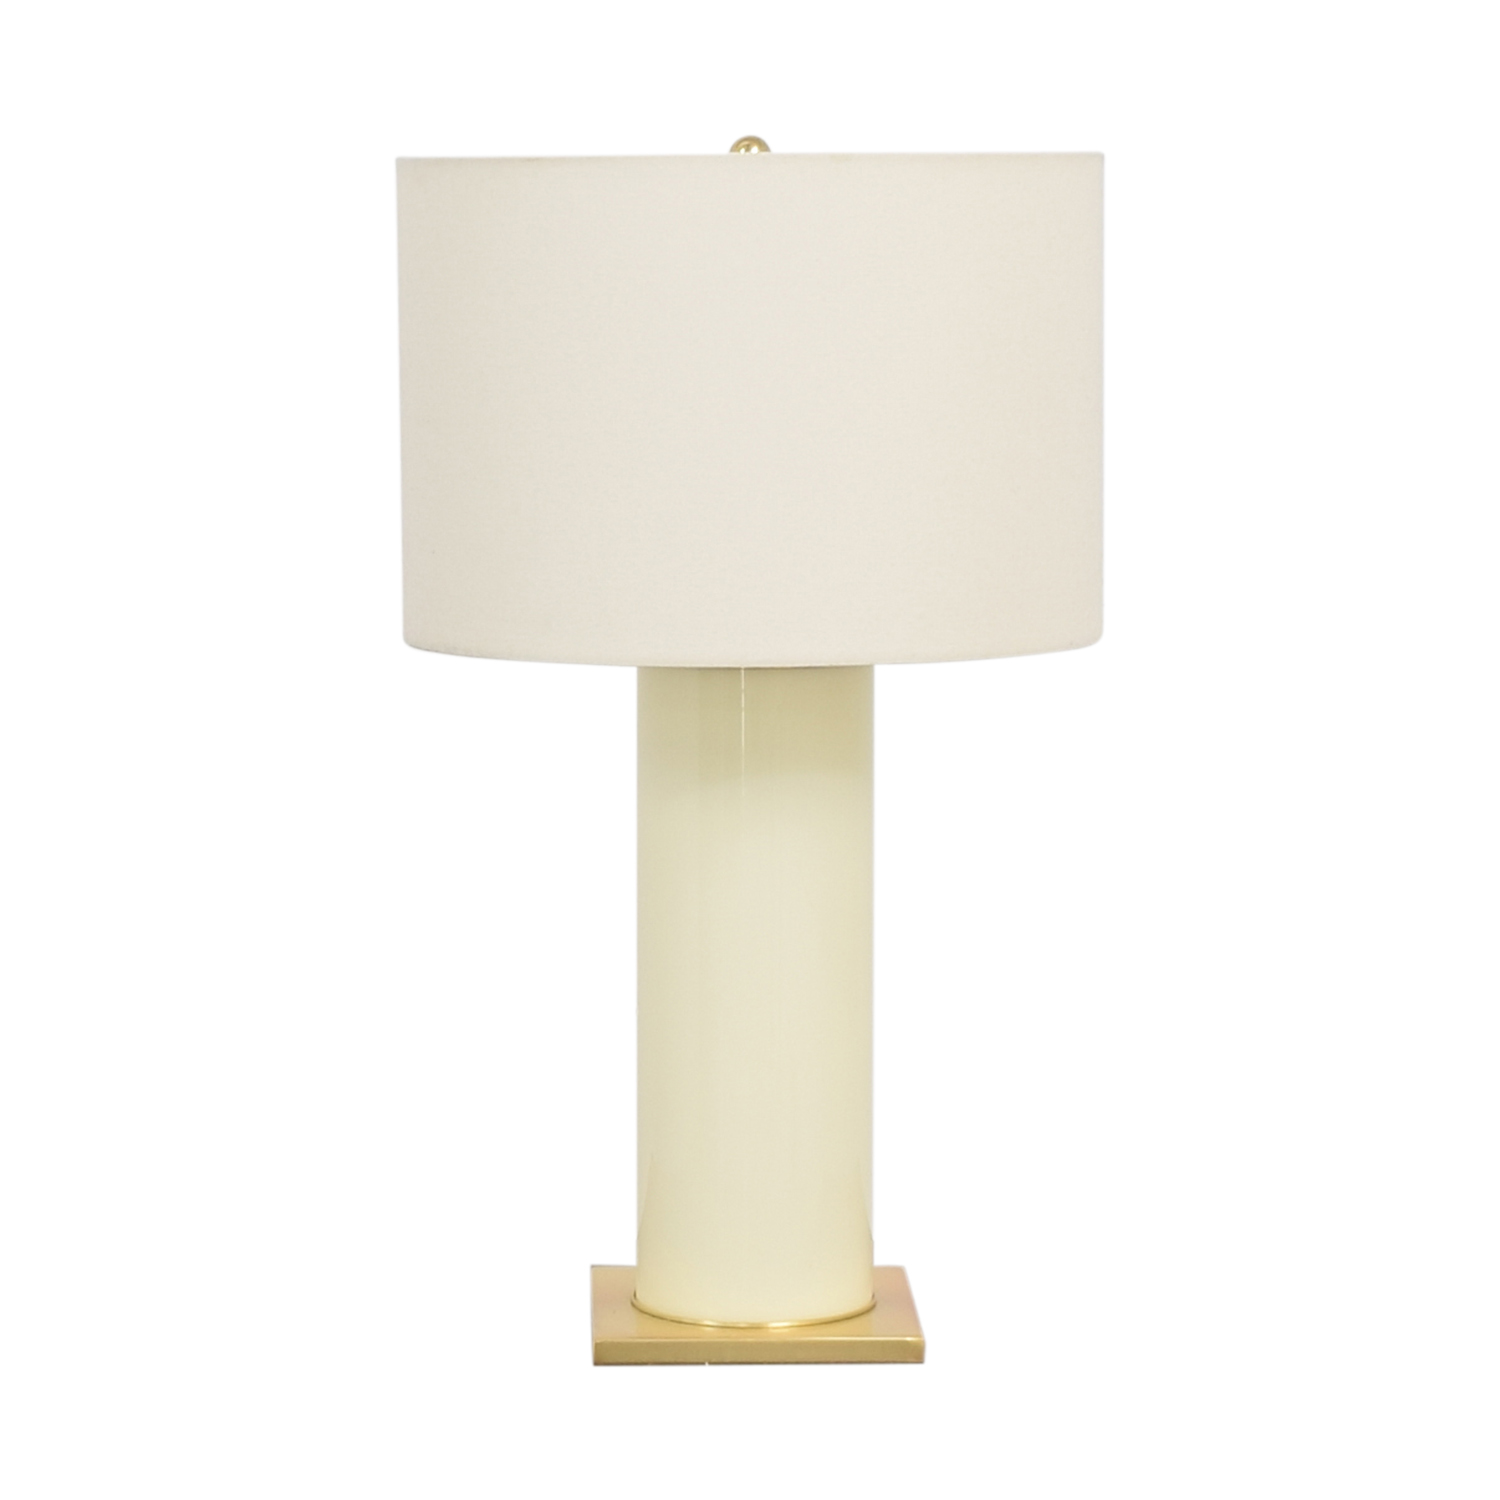 Kate Spade Kate Spade Lamp for sale